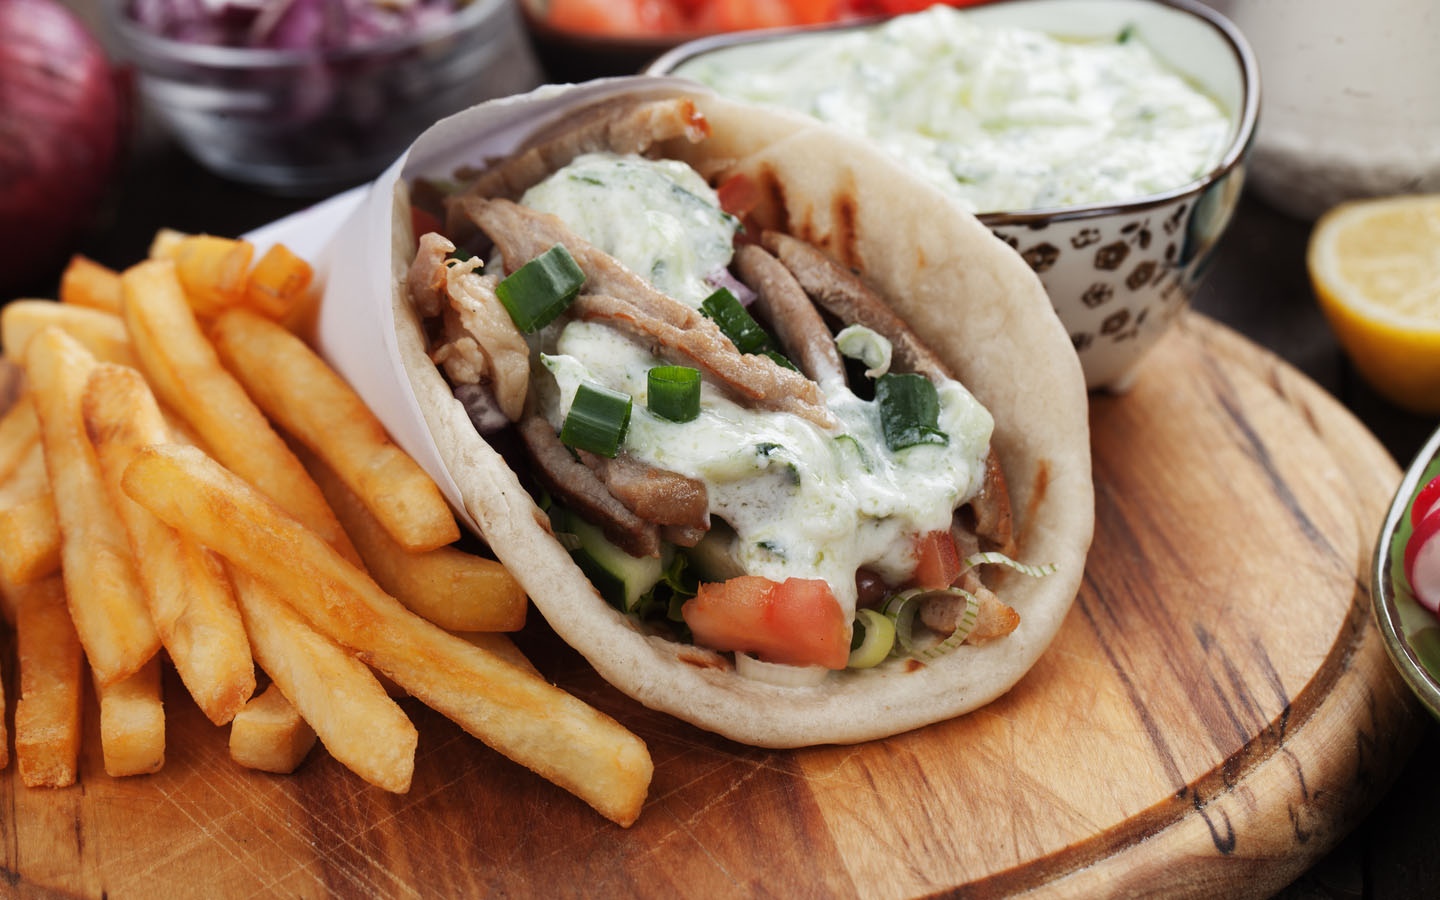 The wrap at Doner & Gyros is a famous one among restaurants in Al Reem Island